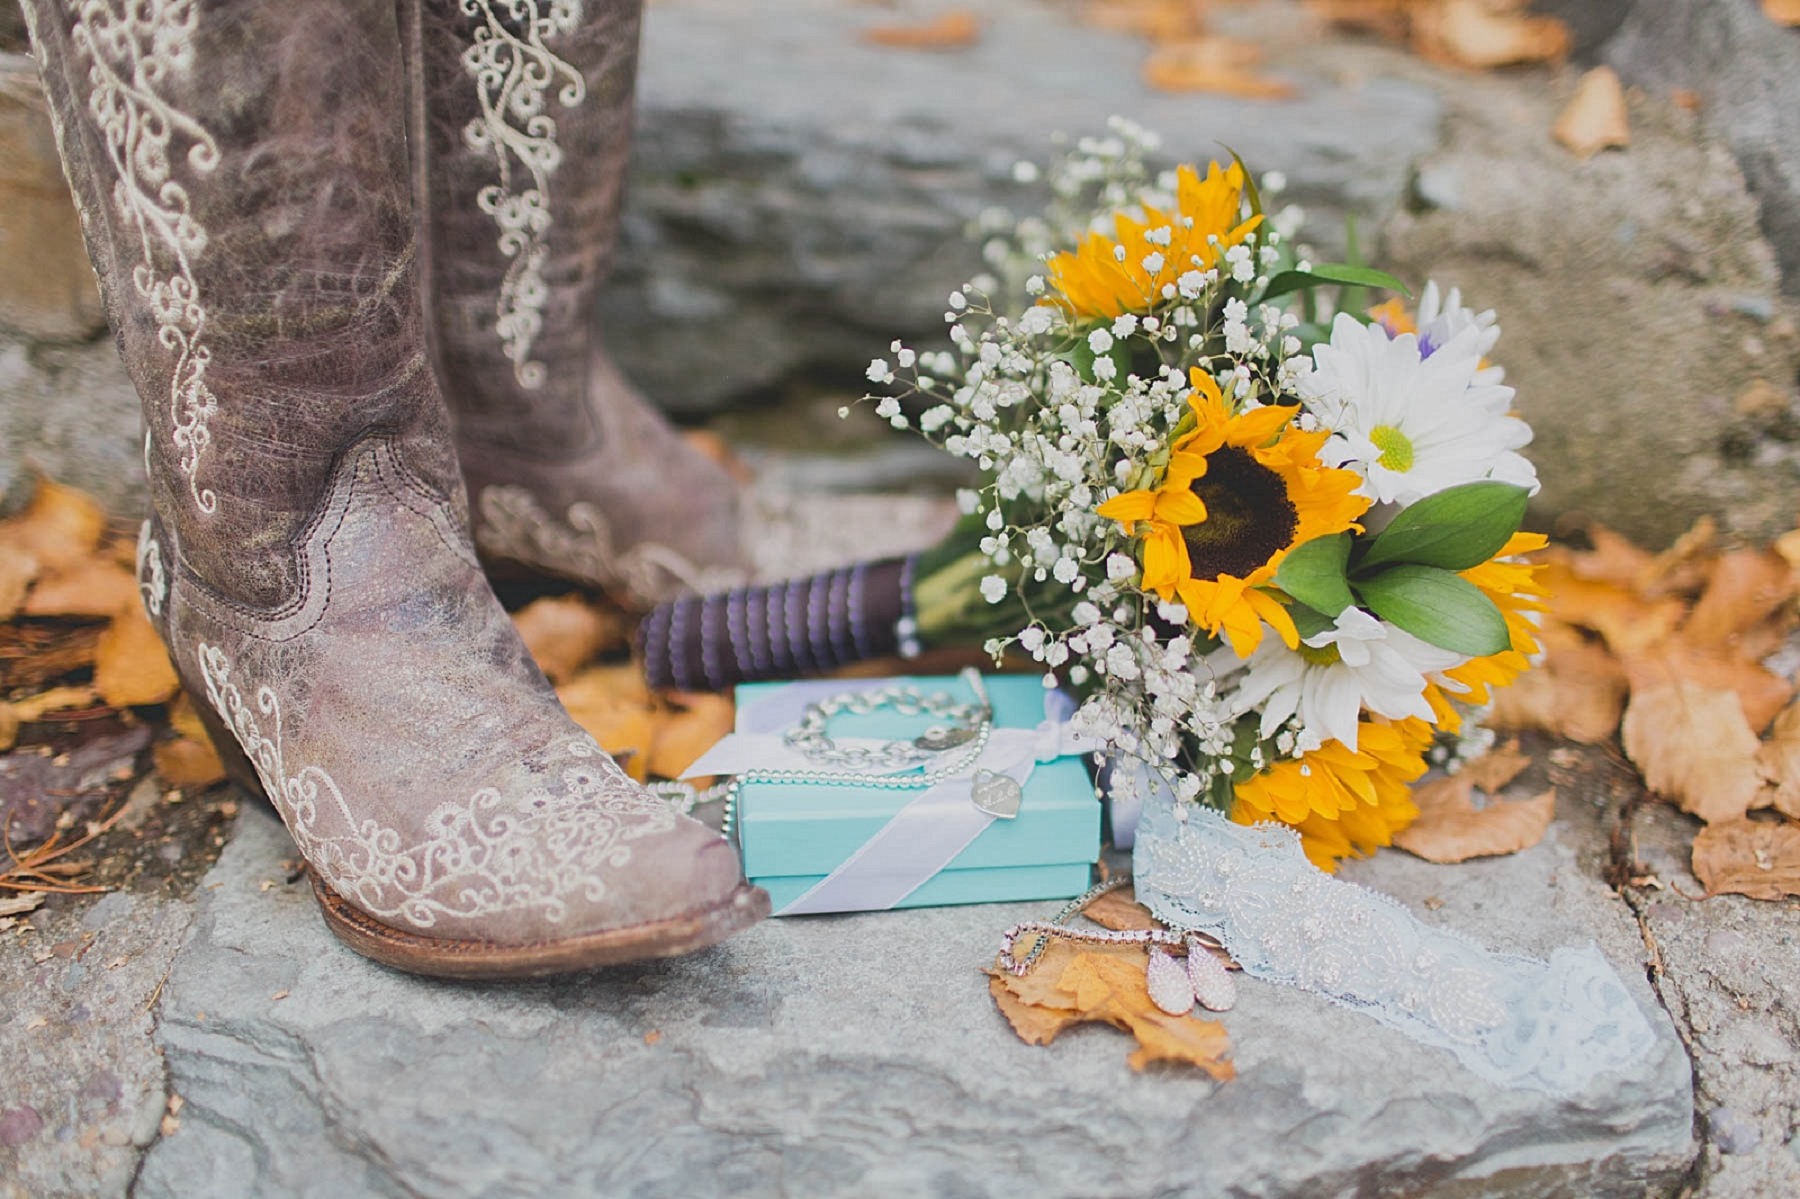 Jennifer_Mooney_photo_glacier_outdoor_center_wedding_montana_fall_elegant_rustic_romantic-3.jpg